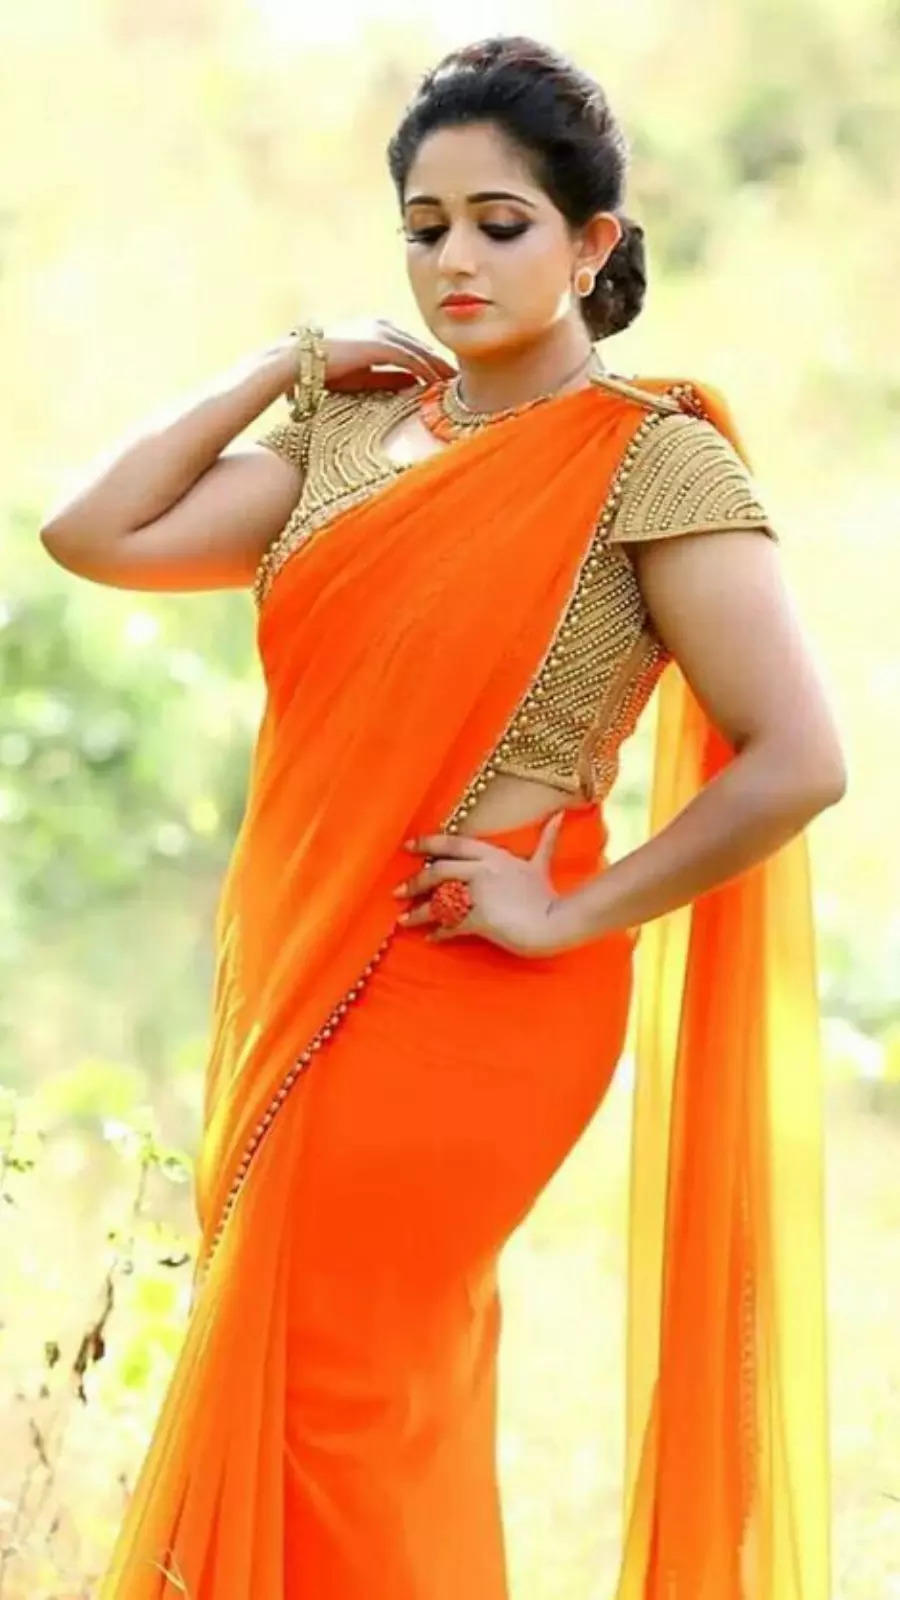 Awesome in orange